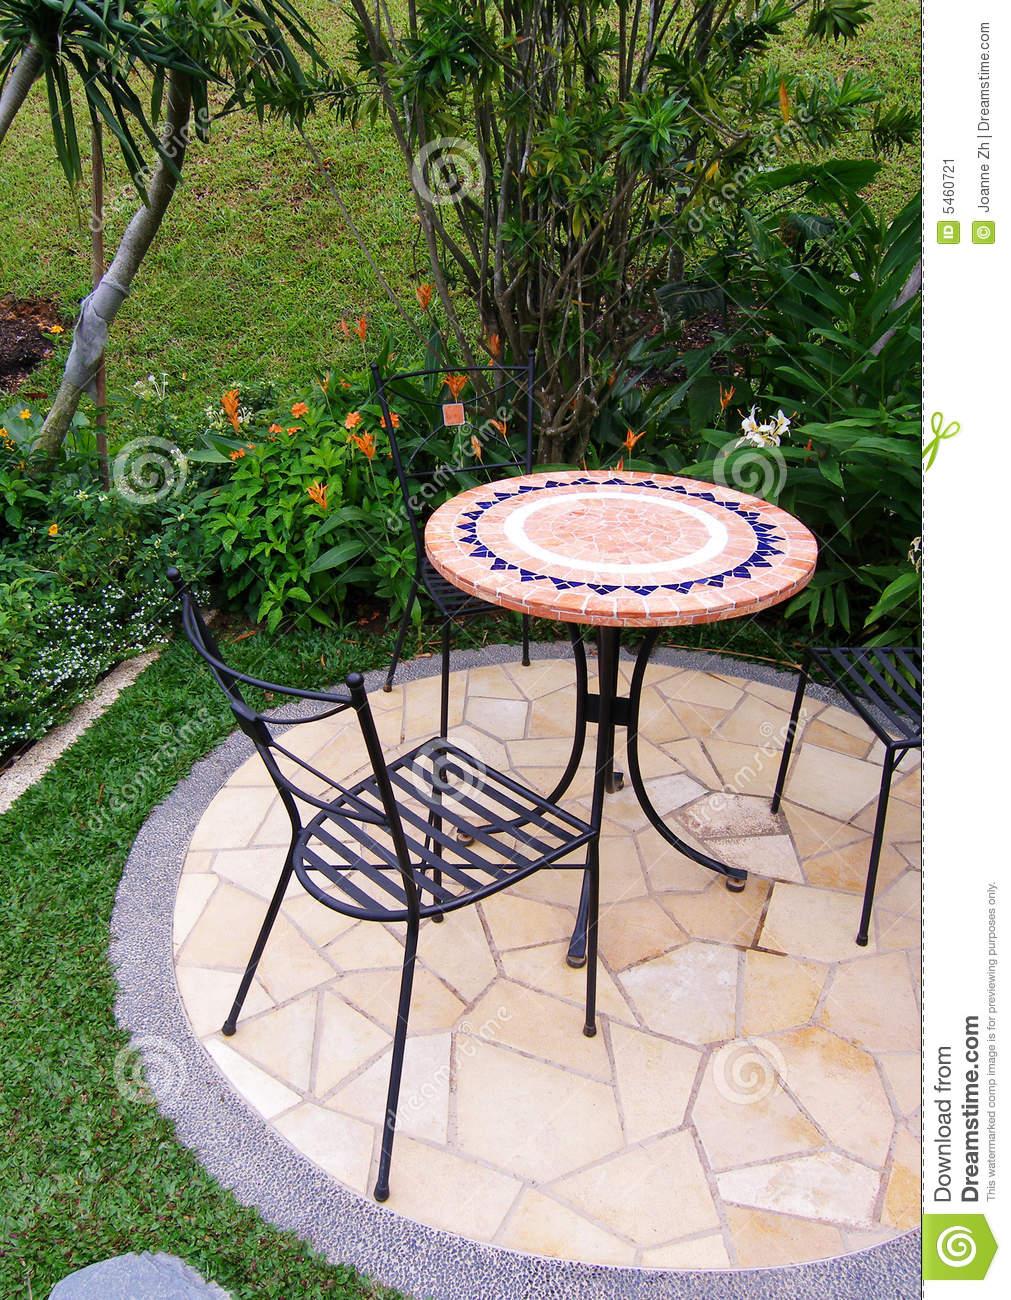 outdoor garden patio furniture stock image image of chair rh dreamstime com garden outdoor furniture in islamabad garden outdoor furniture covers